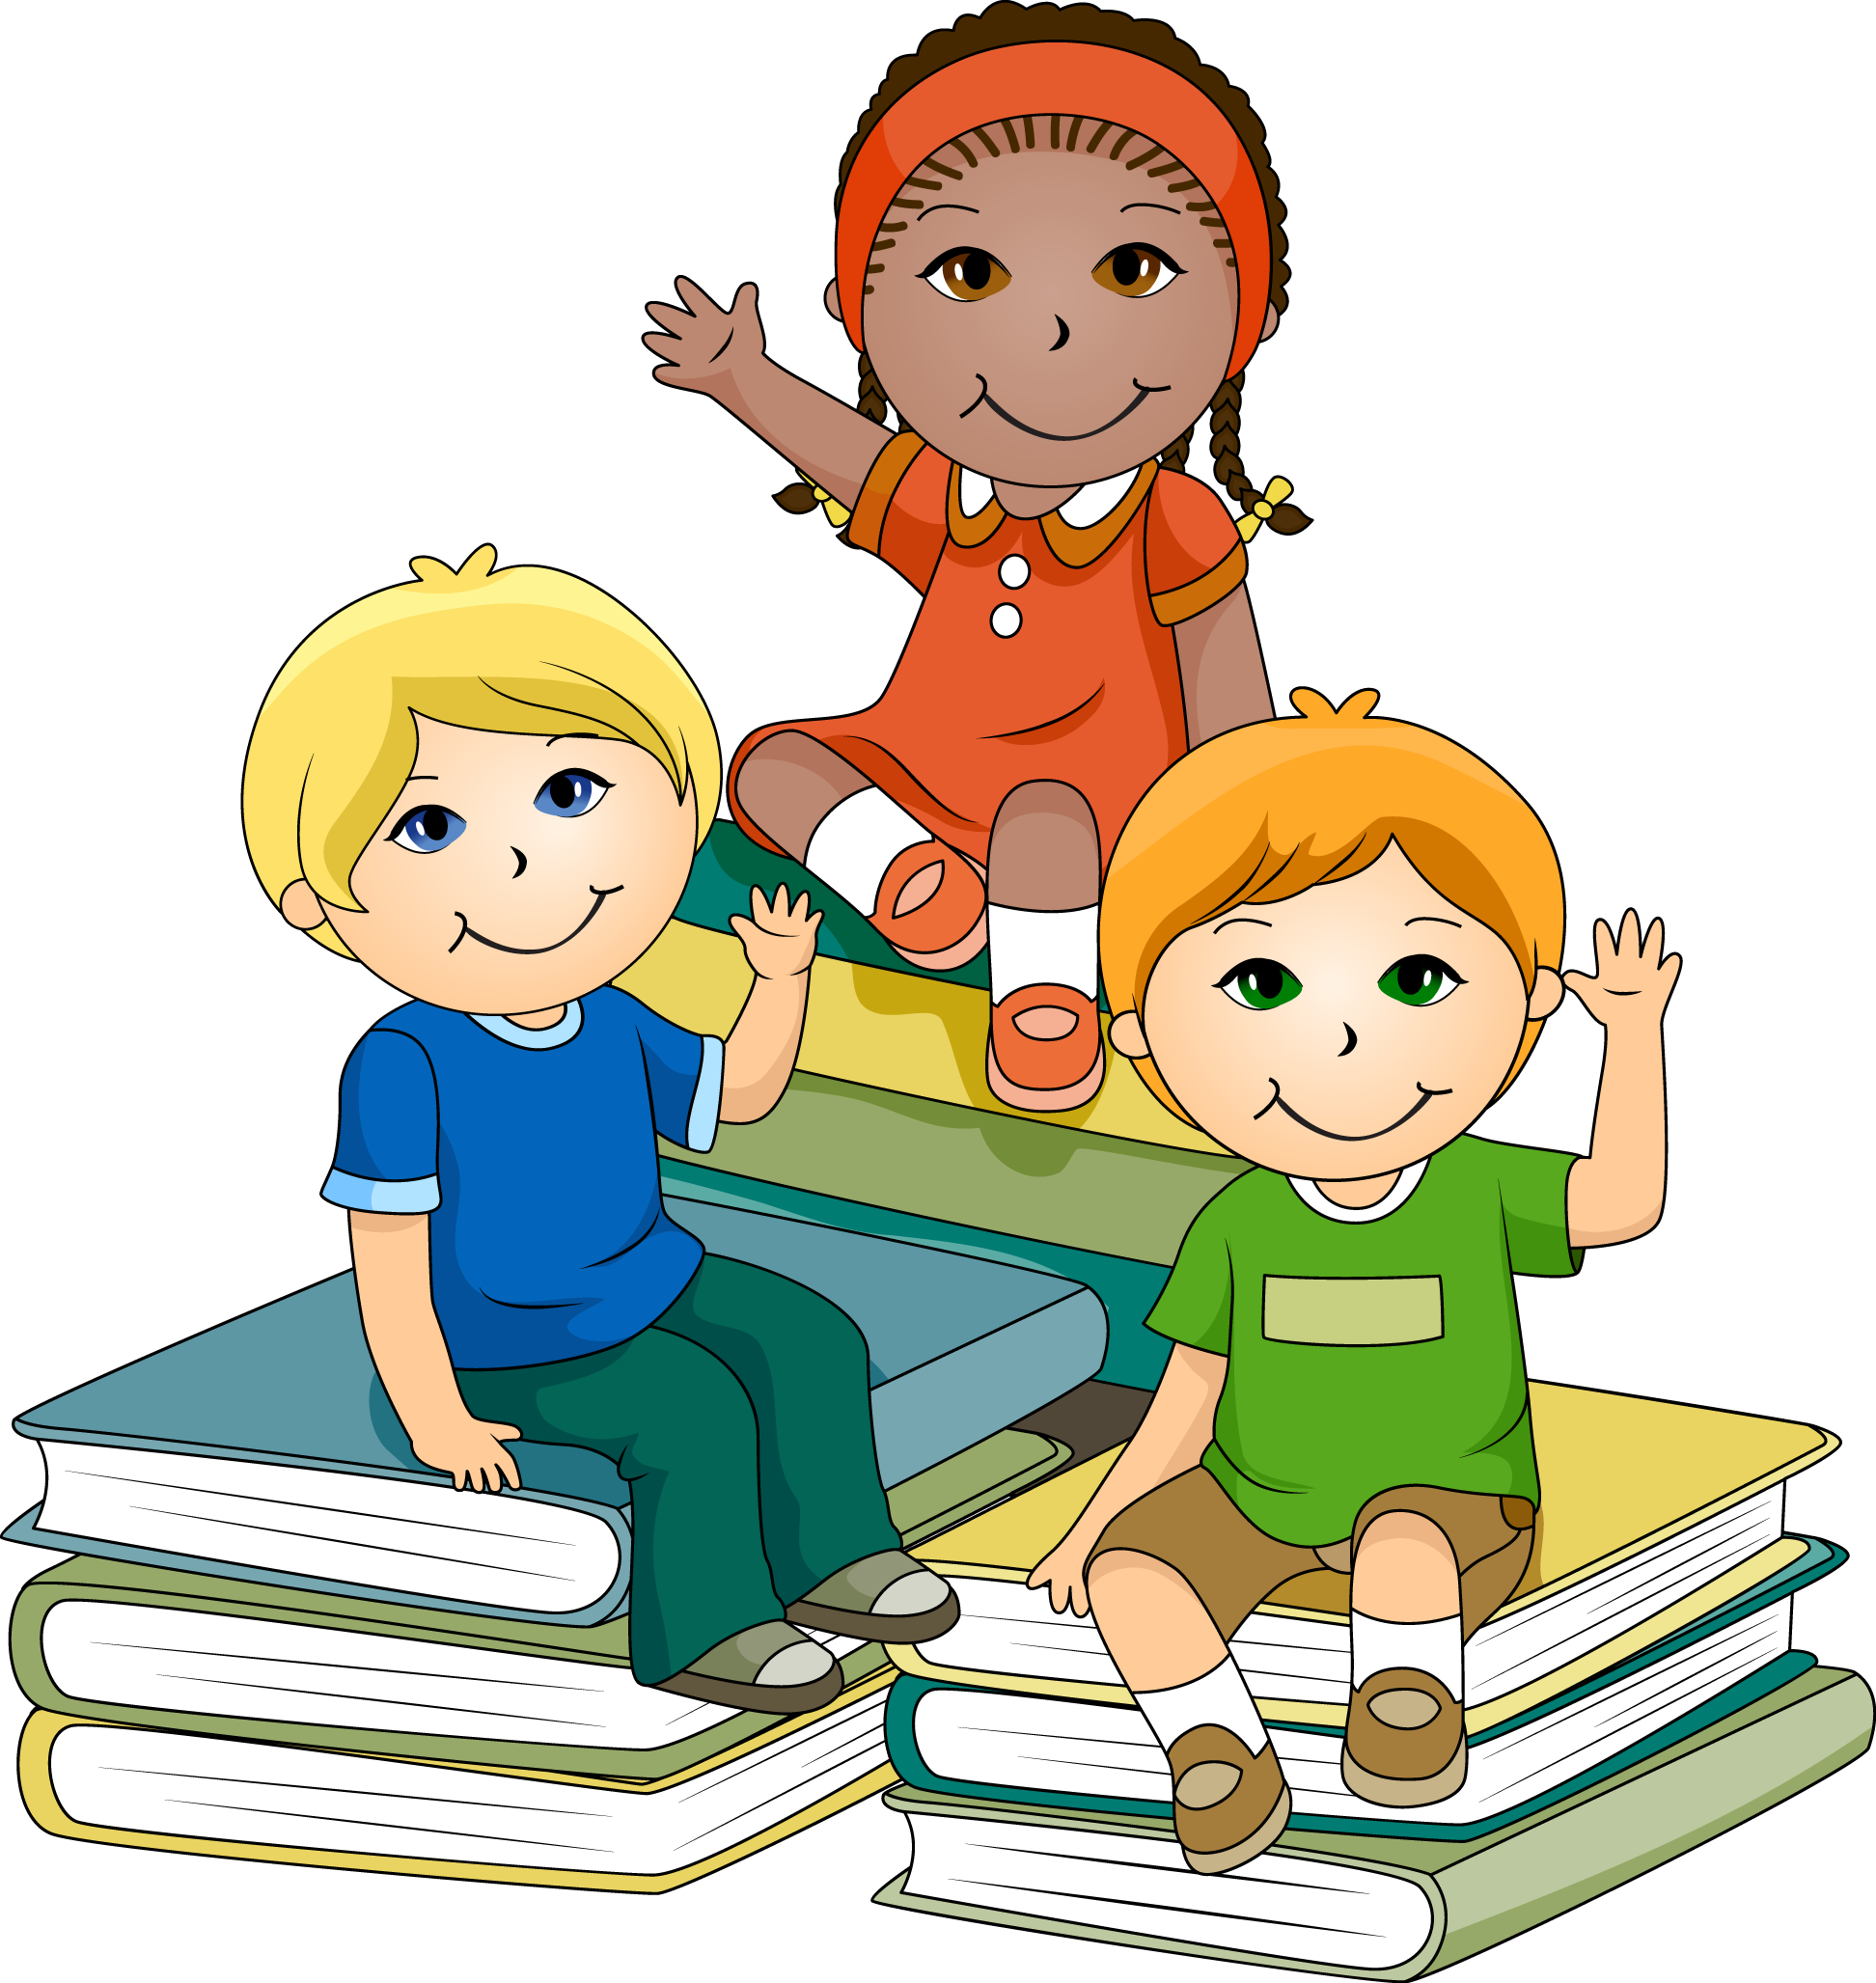 Kids earn money clipart royalty free library Get Creative with This Free Kids Clip Art! | Pinterest | Audio books ... royalty free library